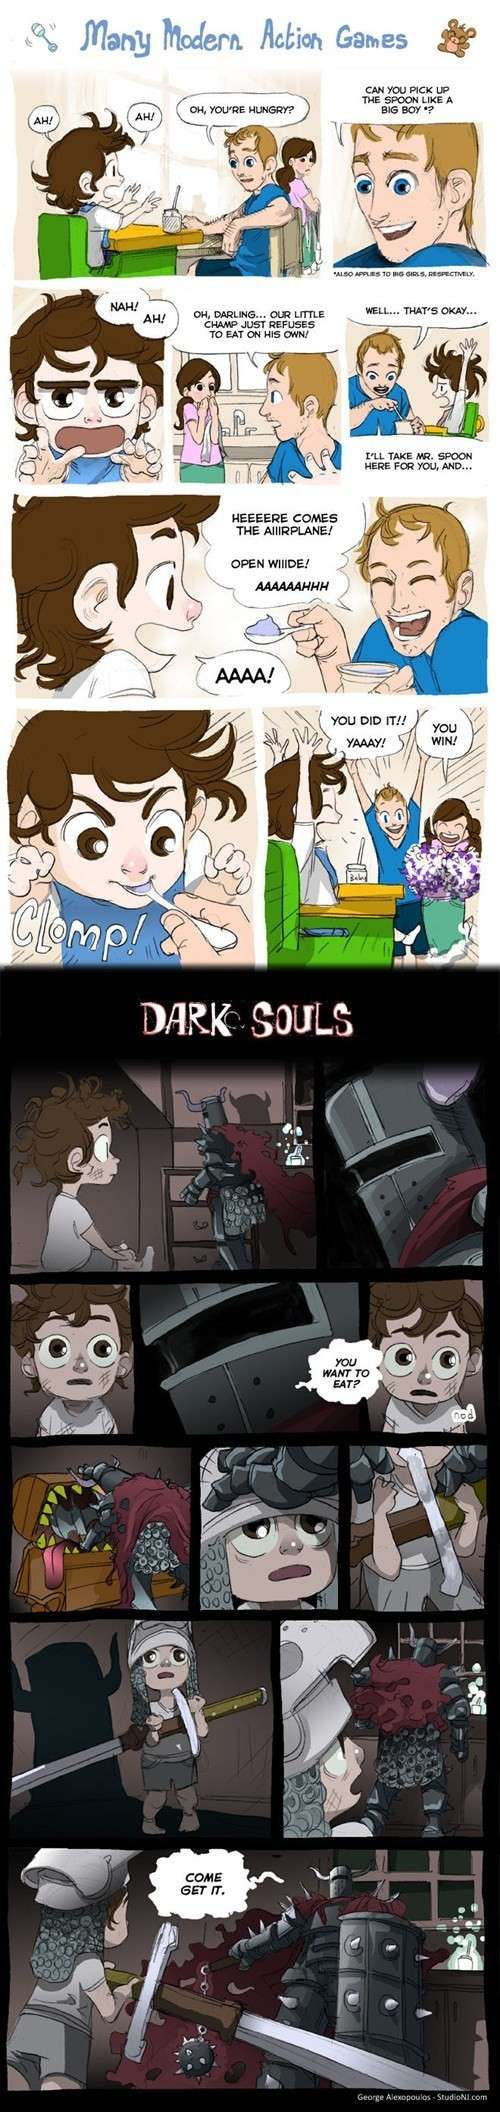 Dark souls Reaction pics / Memes / Random Stuff - Page 6 Ha307f10